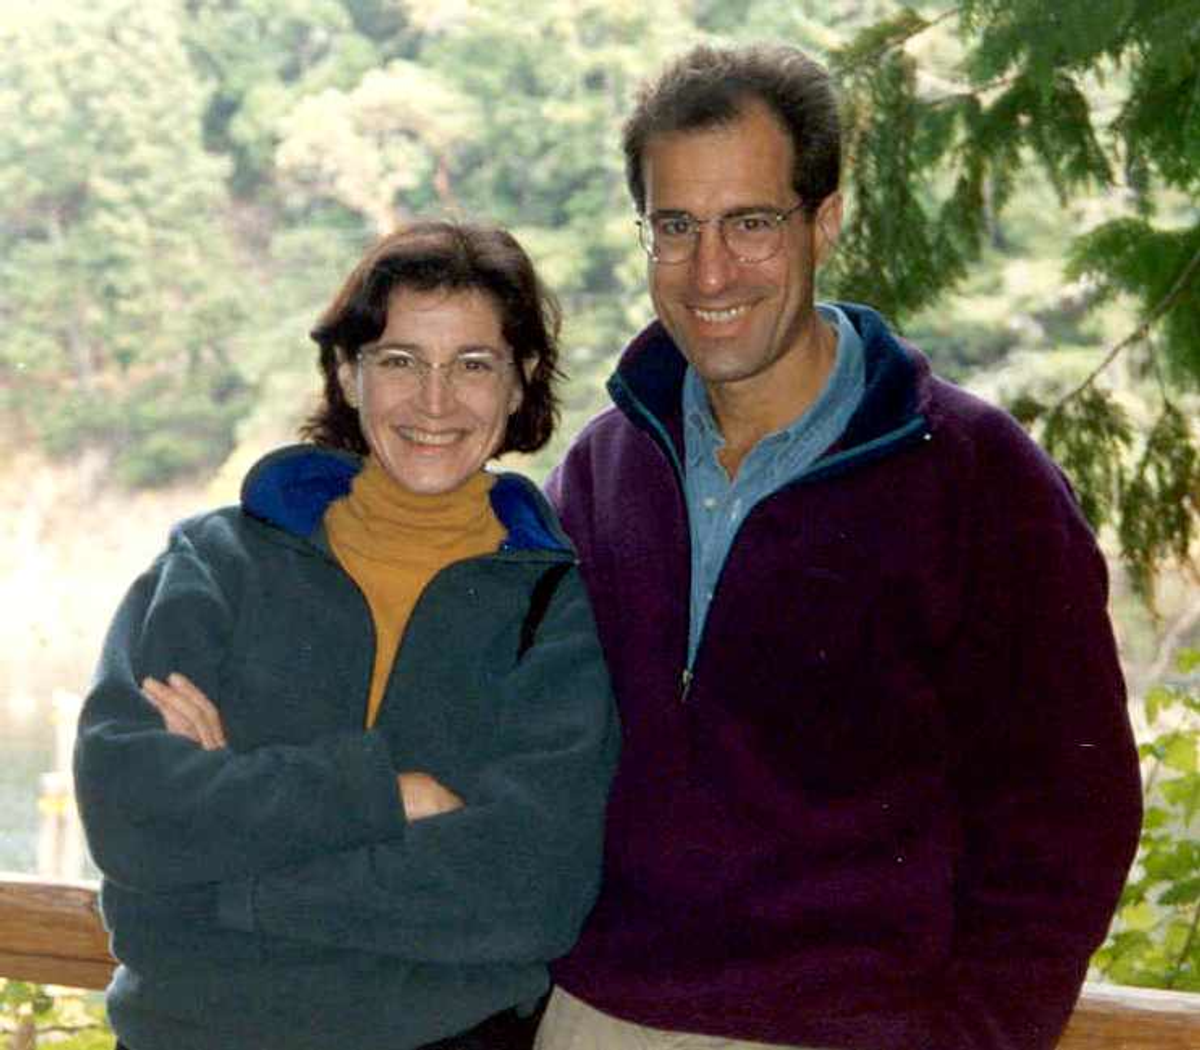 The author and her husband in 1997